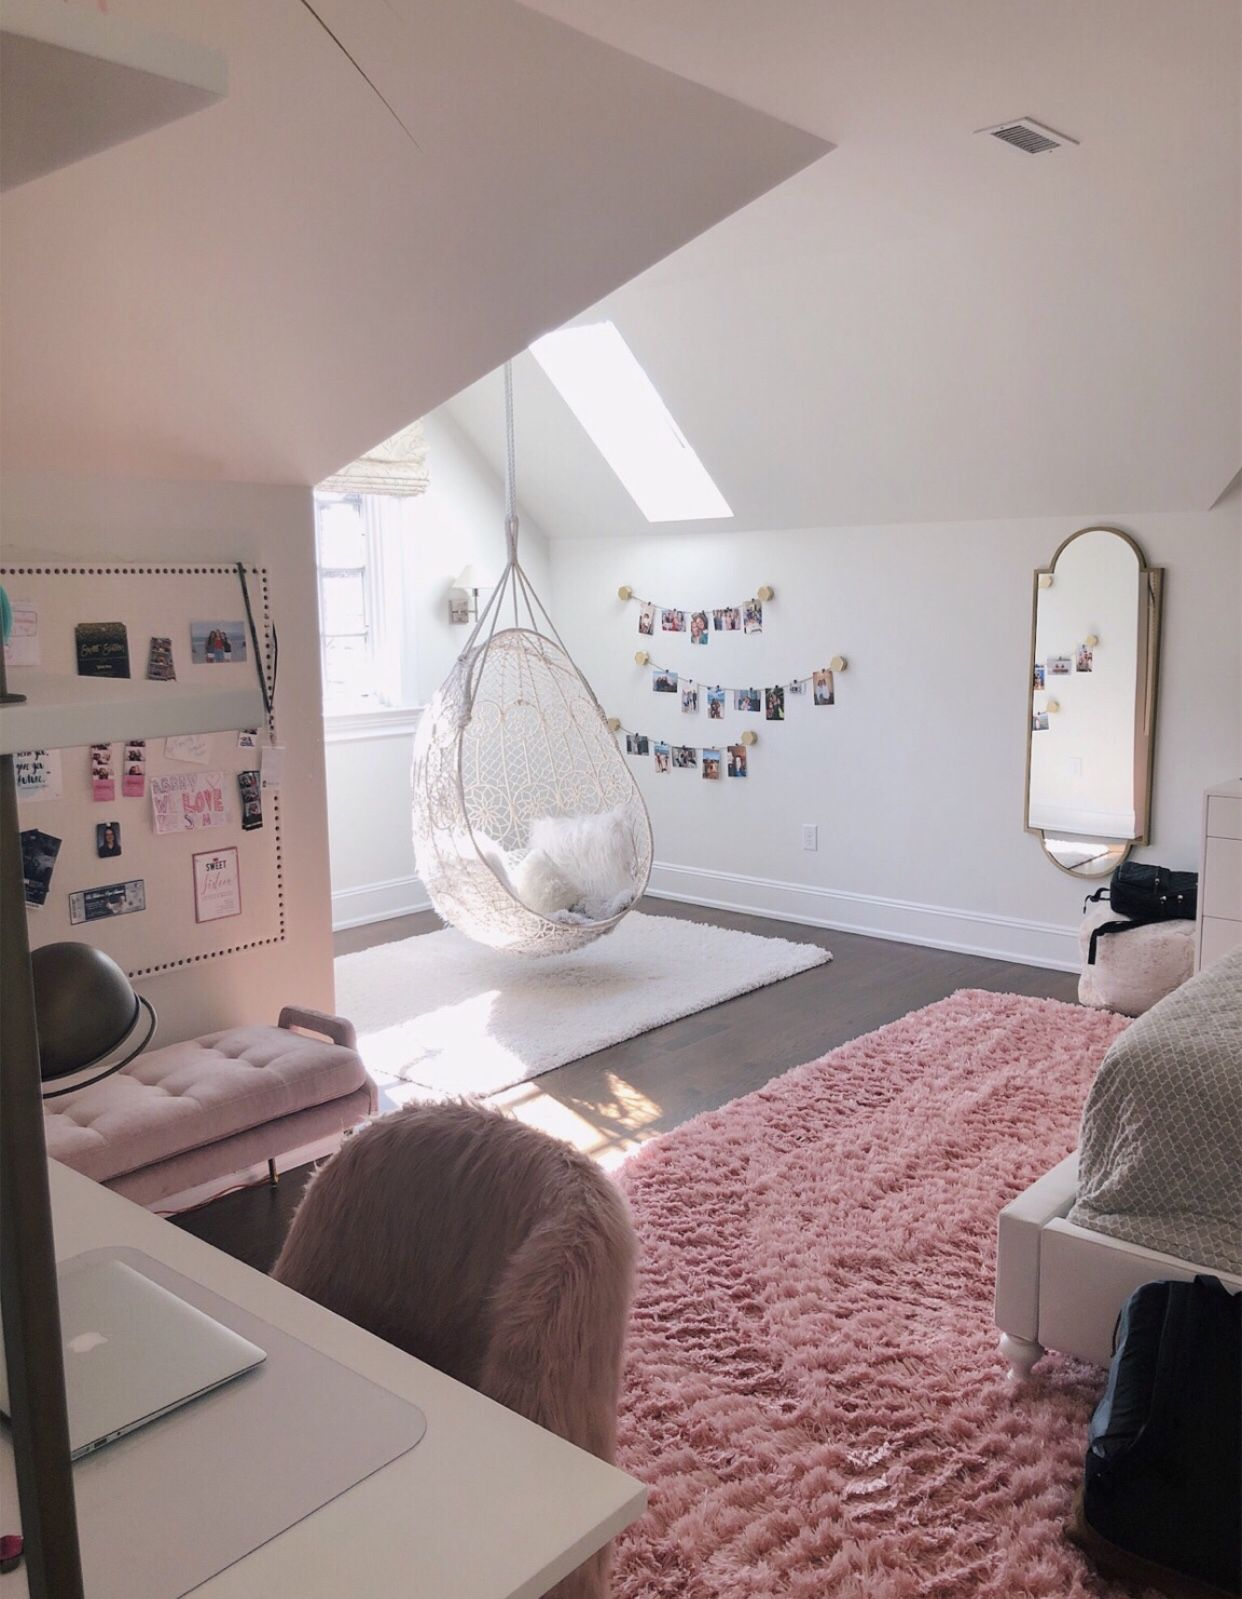 I Love This Room Room Inspiration Bedroom Small Apartment Bedrooms Room Ideas Bedroom